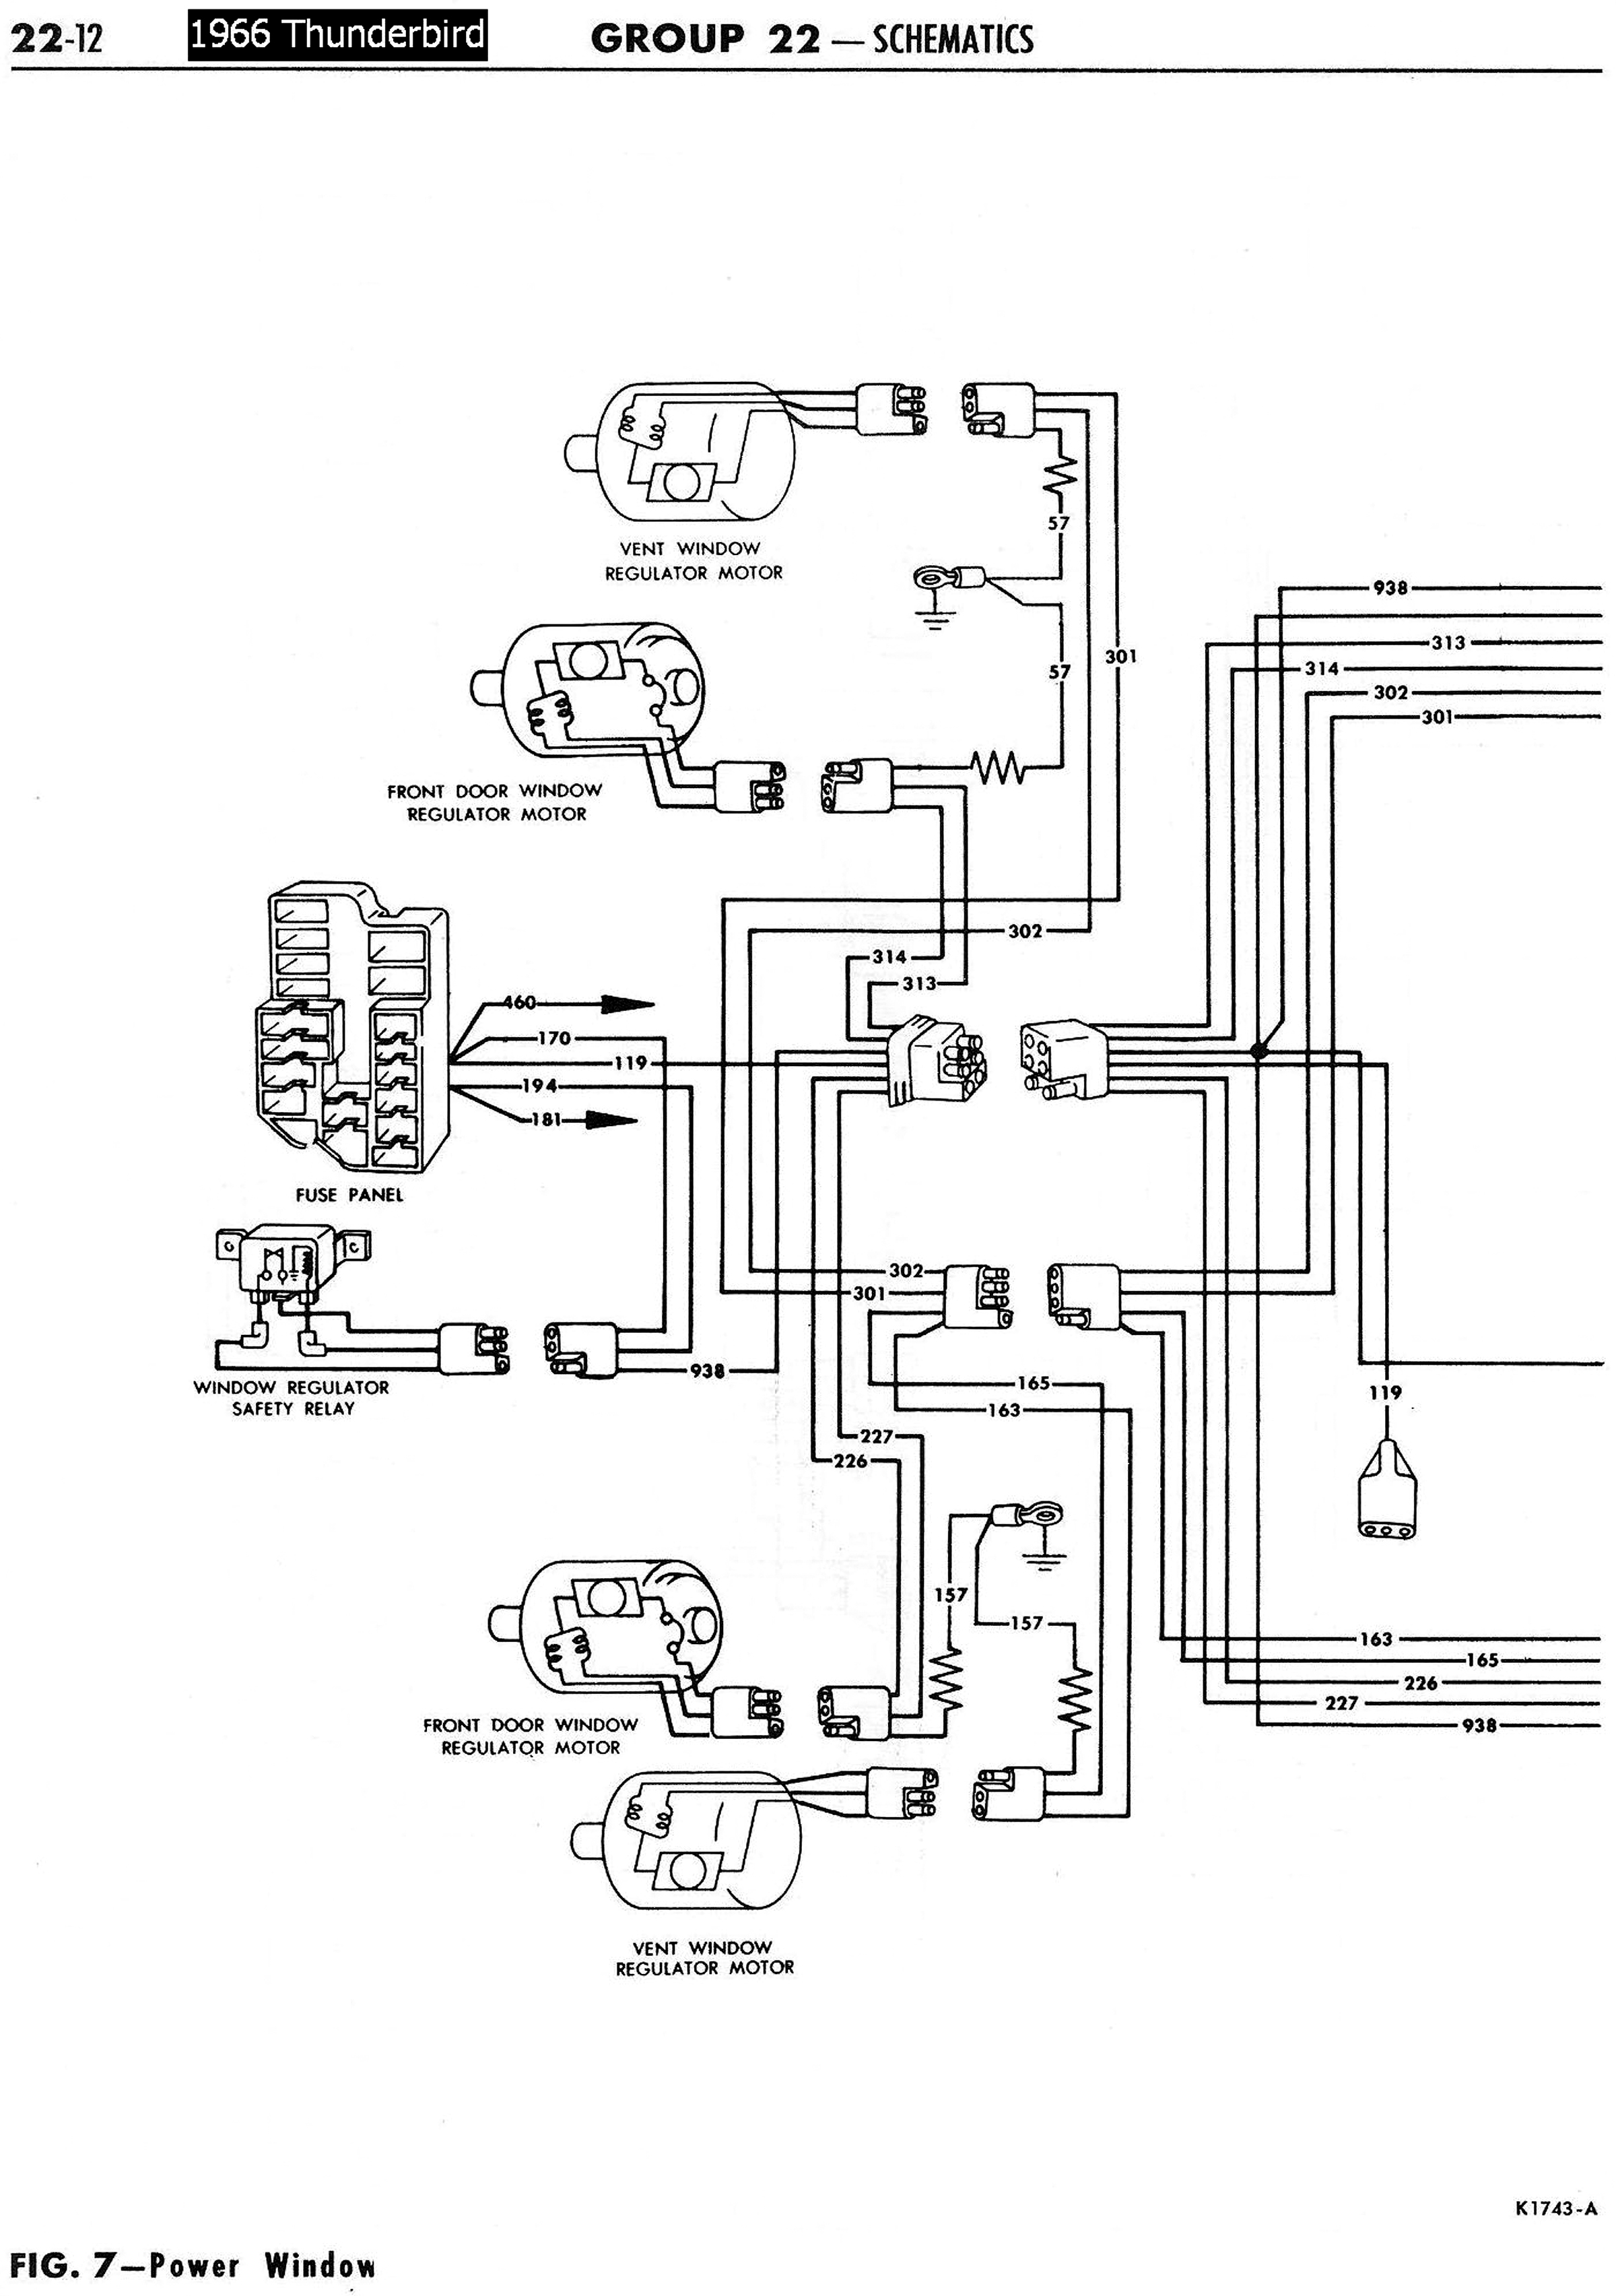 56 Frod Thunderbird Wiring Diagram : 34 Wiring Diagram